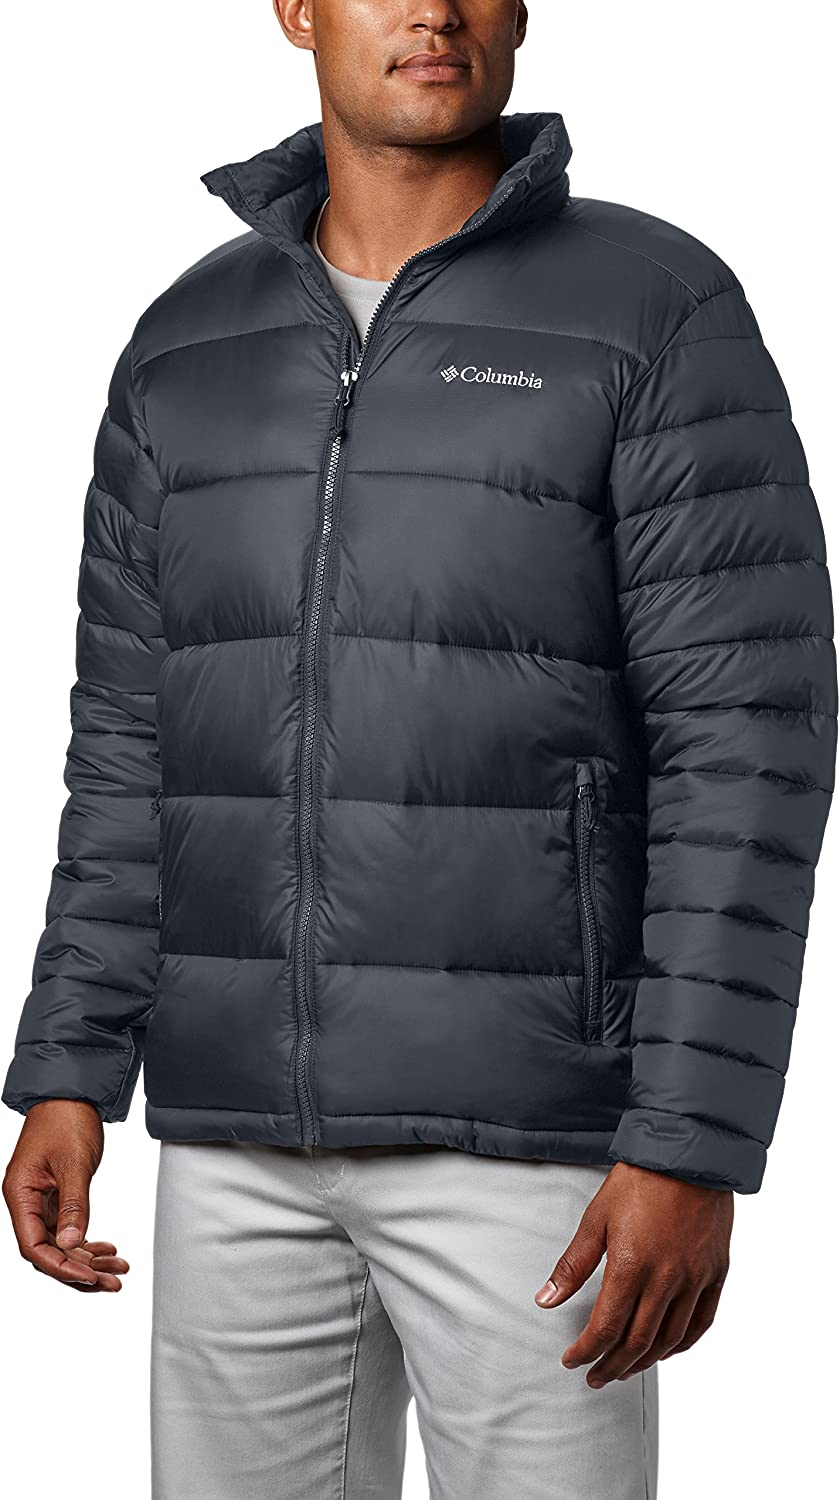 Columbia Mens Frost Fighter Insulated Puffer Jacket